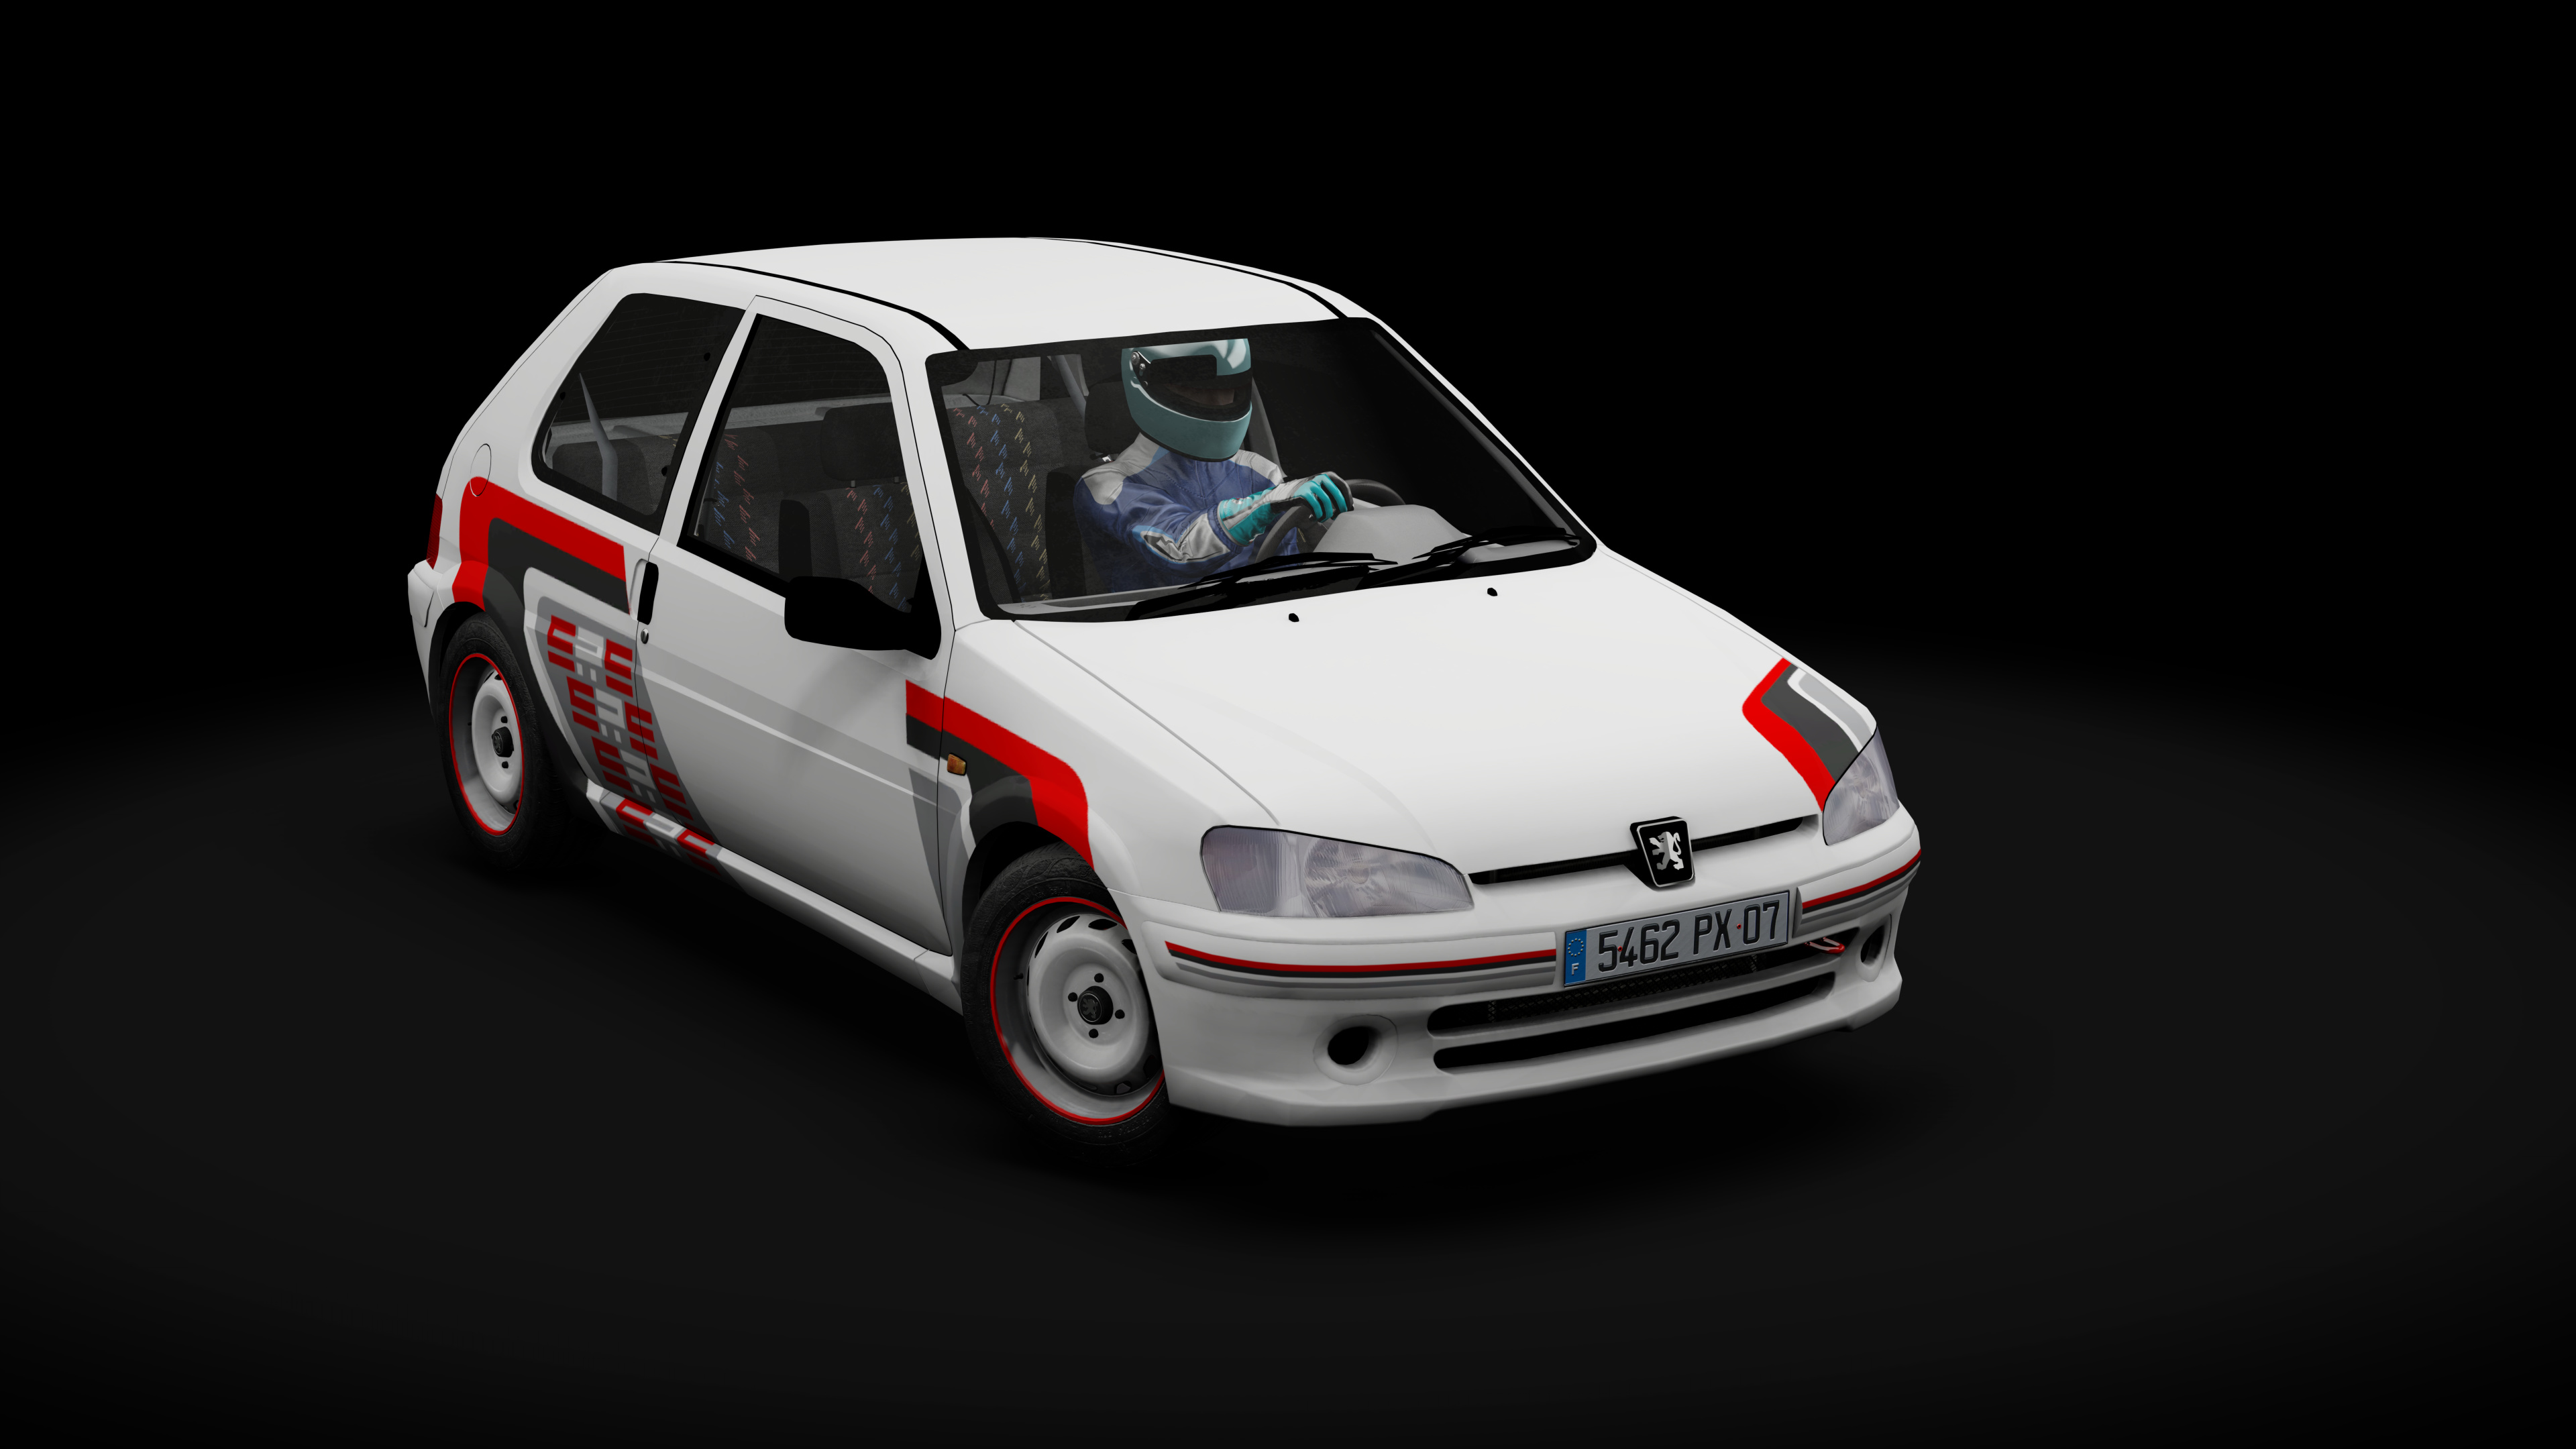 Peugeot 106 Rallye S2 Srs White Livery Racedepartment